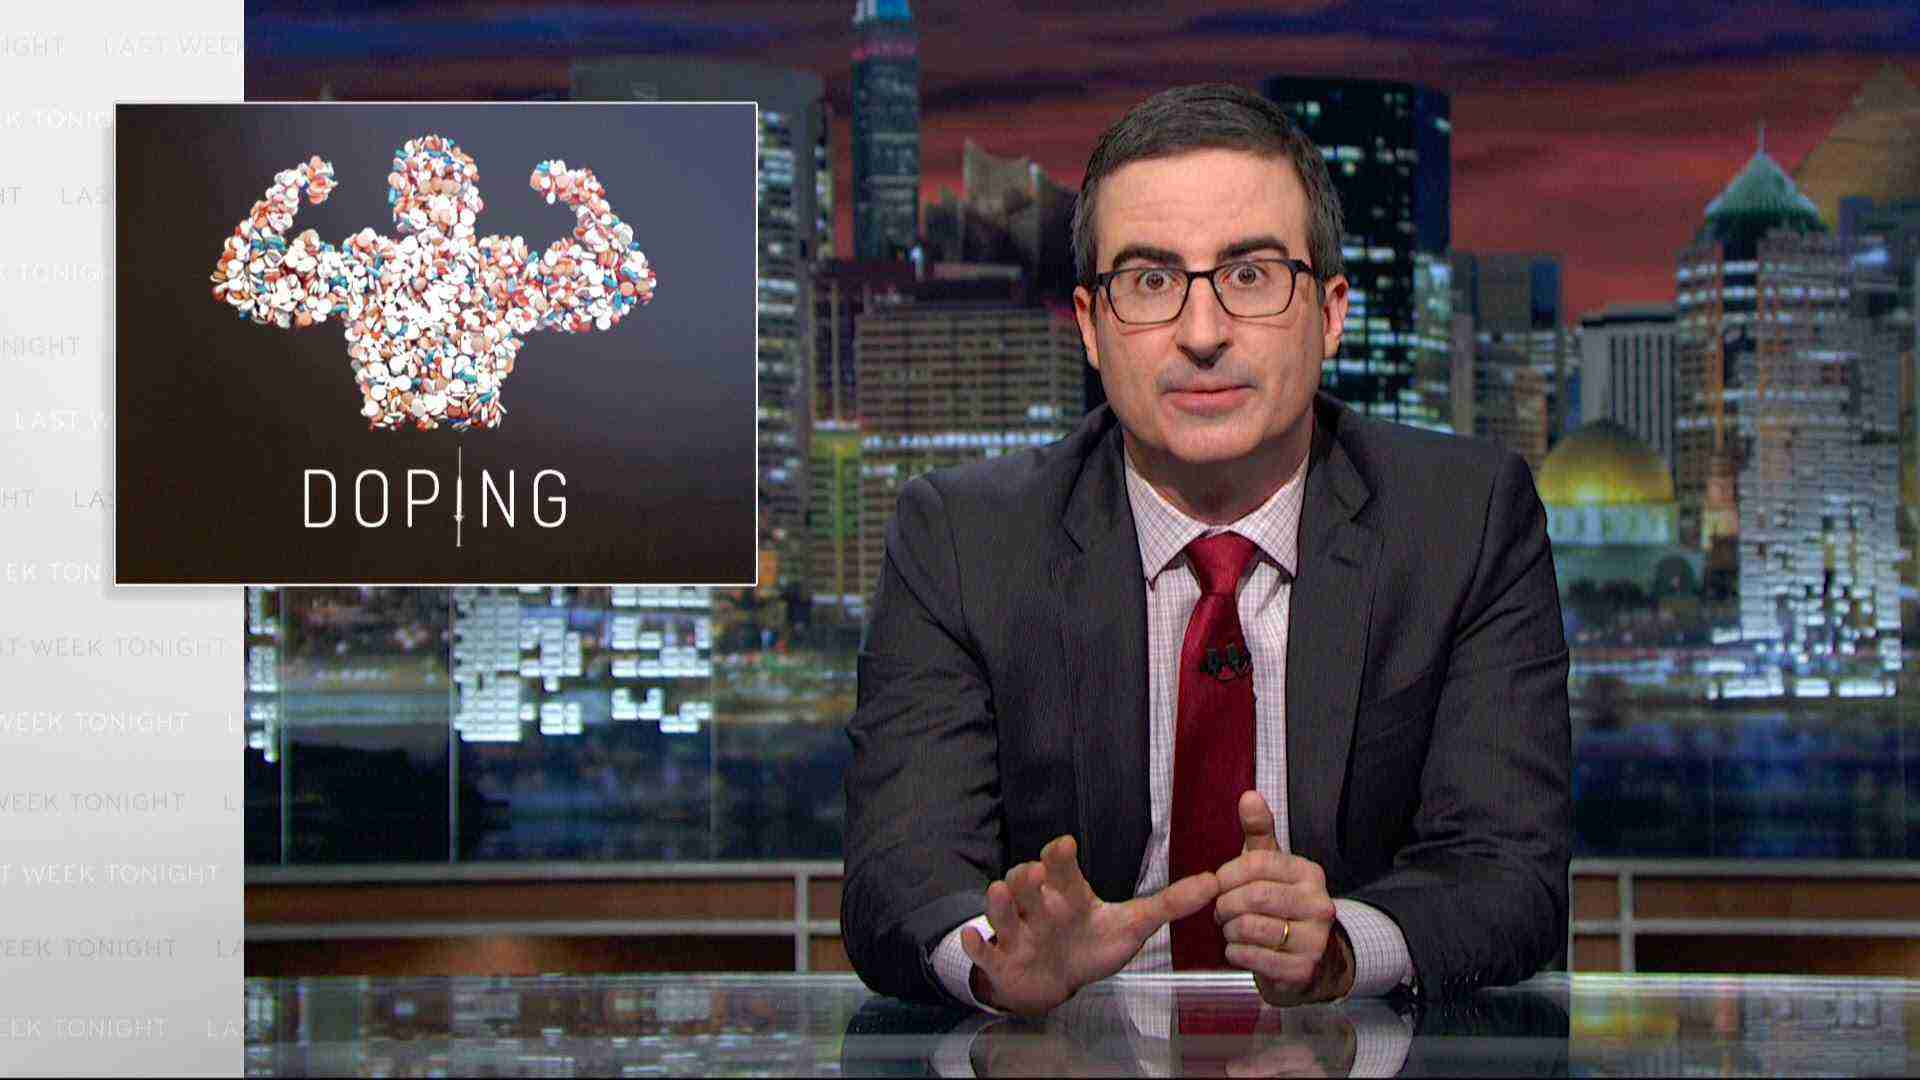 Doping: Last Week Tonight with John Oliver (HBO)